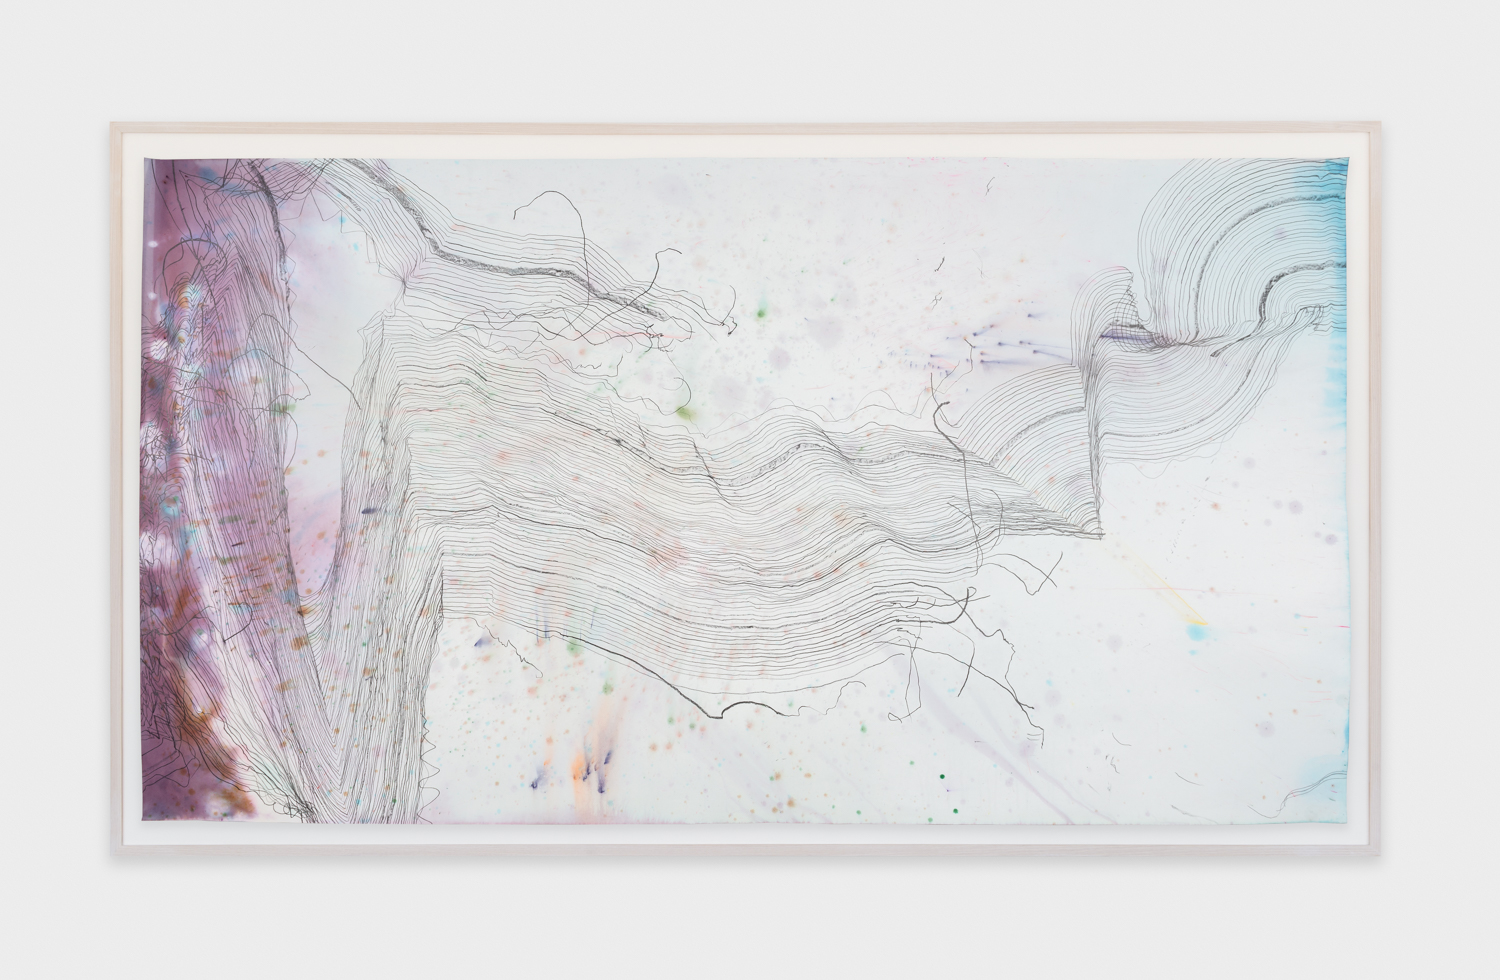 Jay Heikes  Music for Minor Planets (Georgiou)  2015 Pencil and dye on paper 44h x 80w in JH040